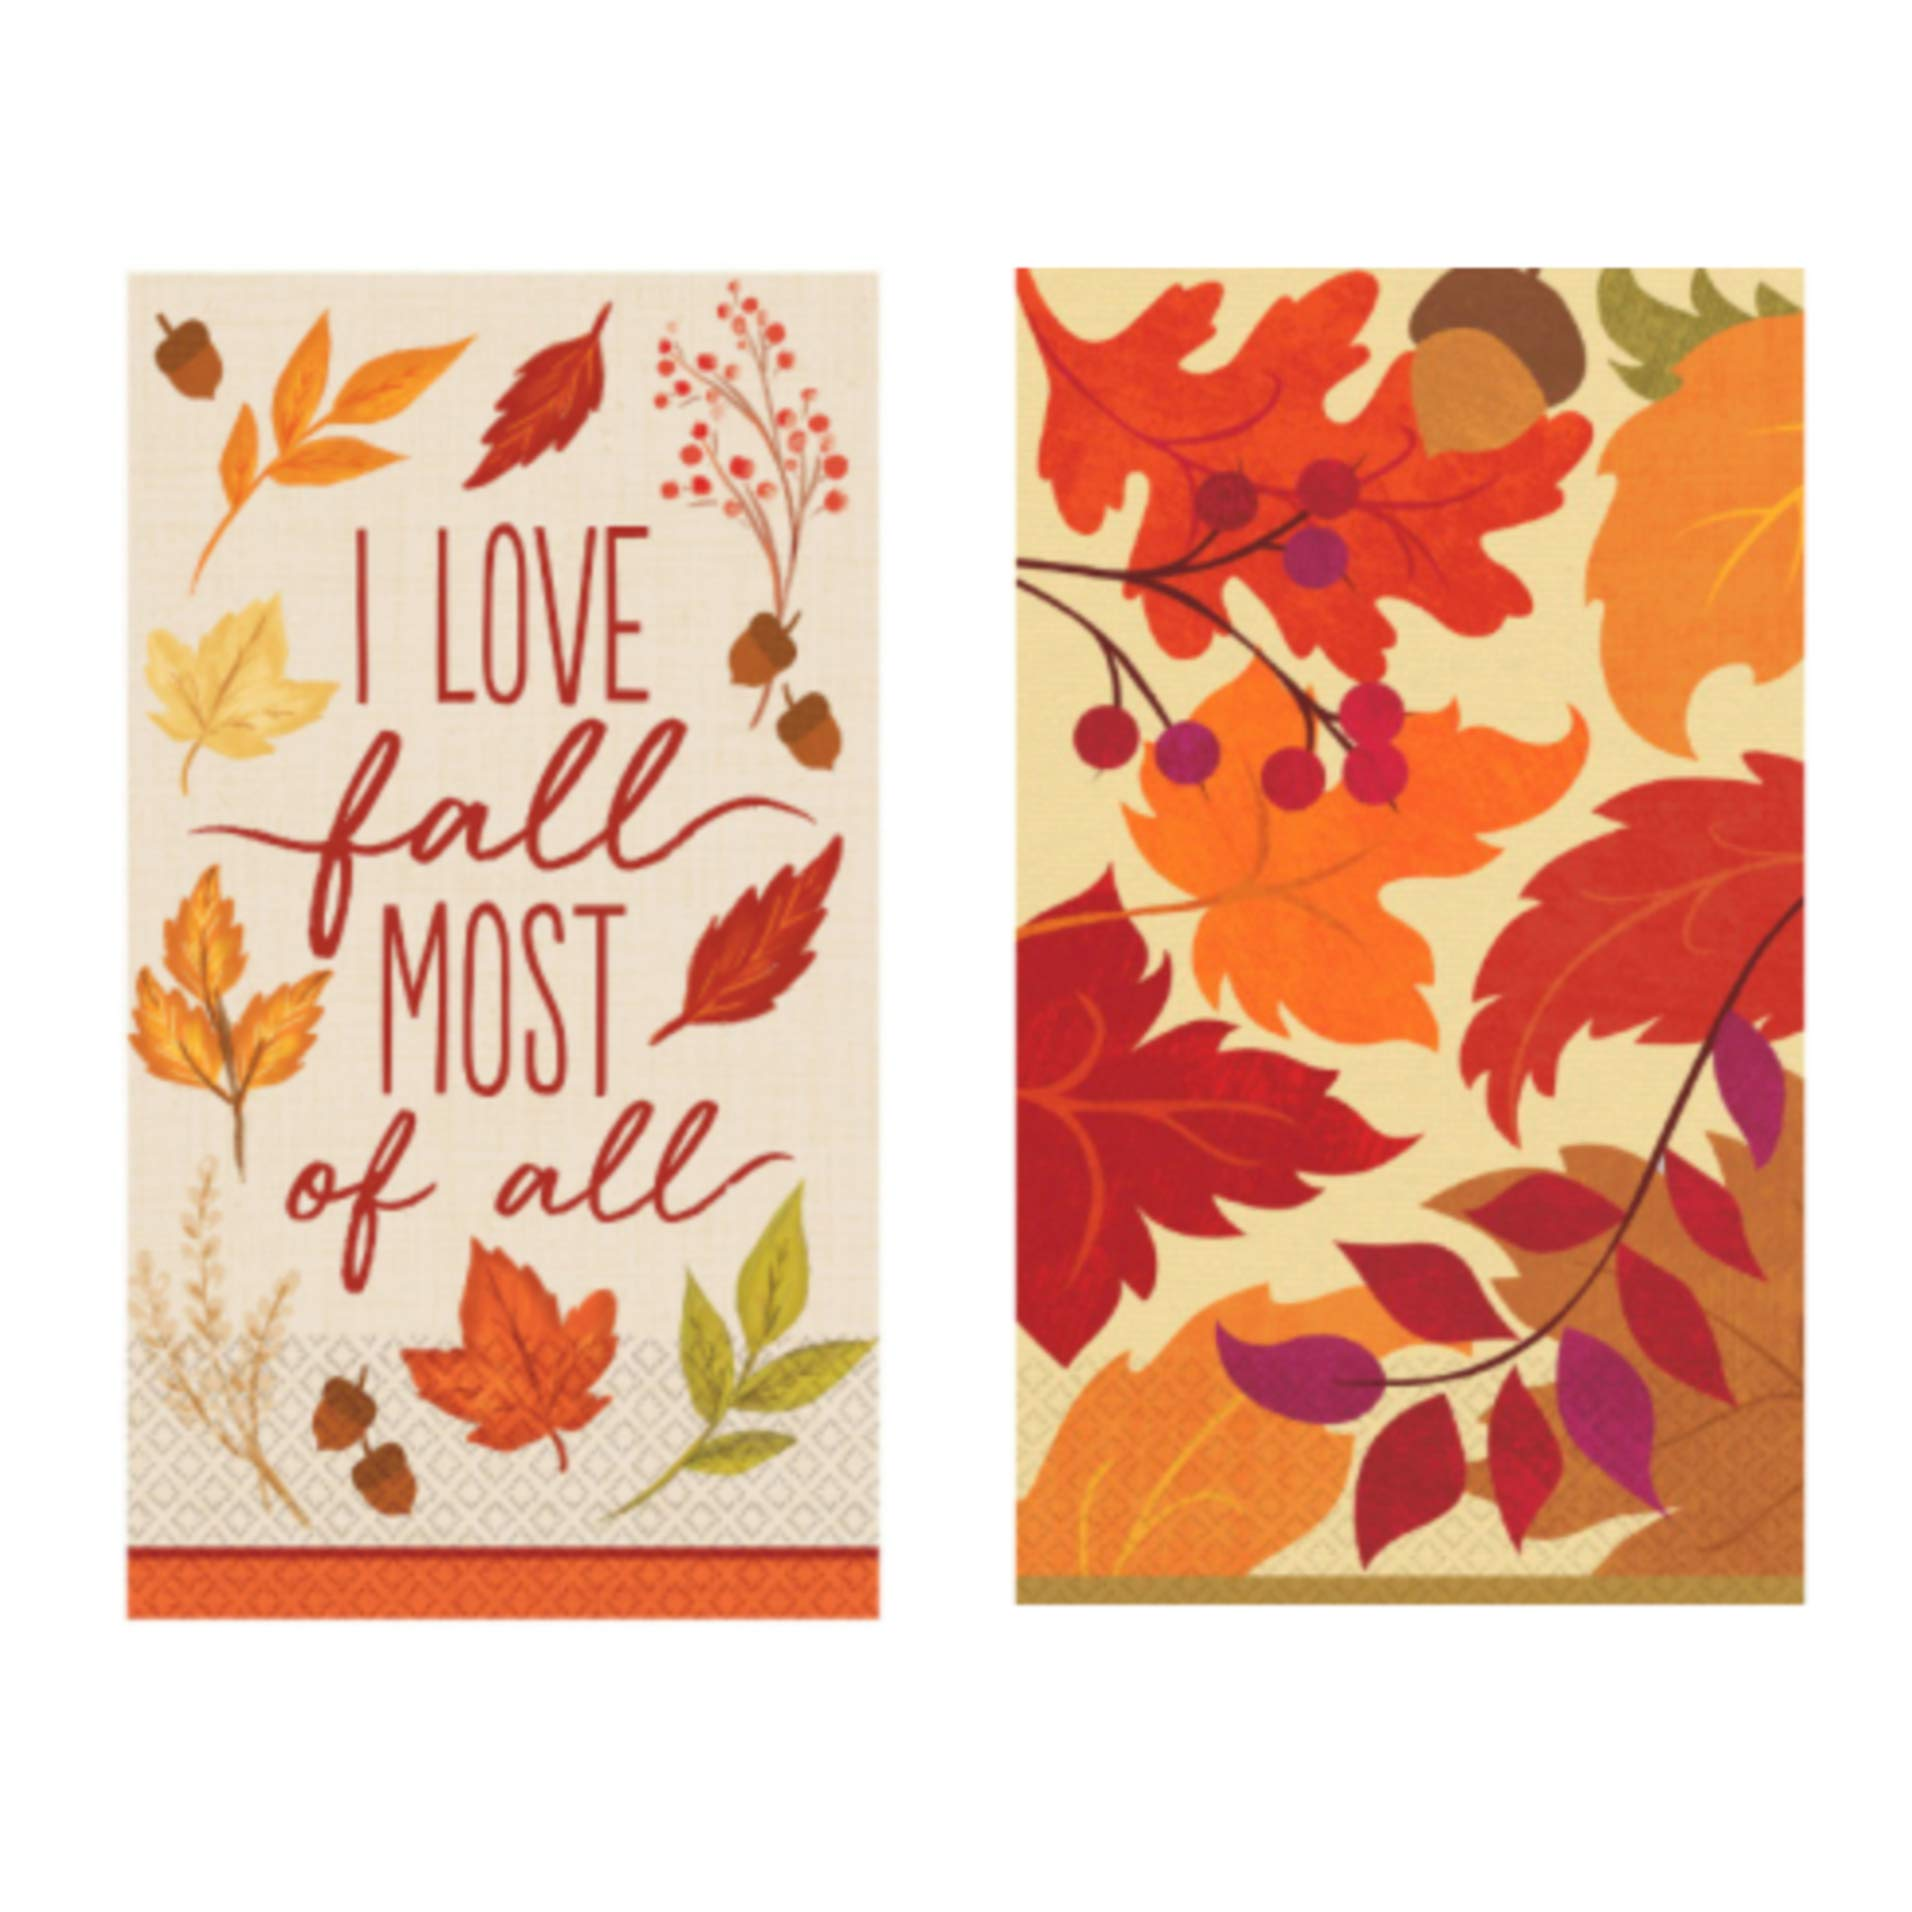 Disposable Fall Guest Towels Paper Napkins for Bathroom, Set of 2 Packages of 16 (Fall Foliage/Festive Fall) by RLT-Home